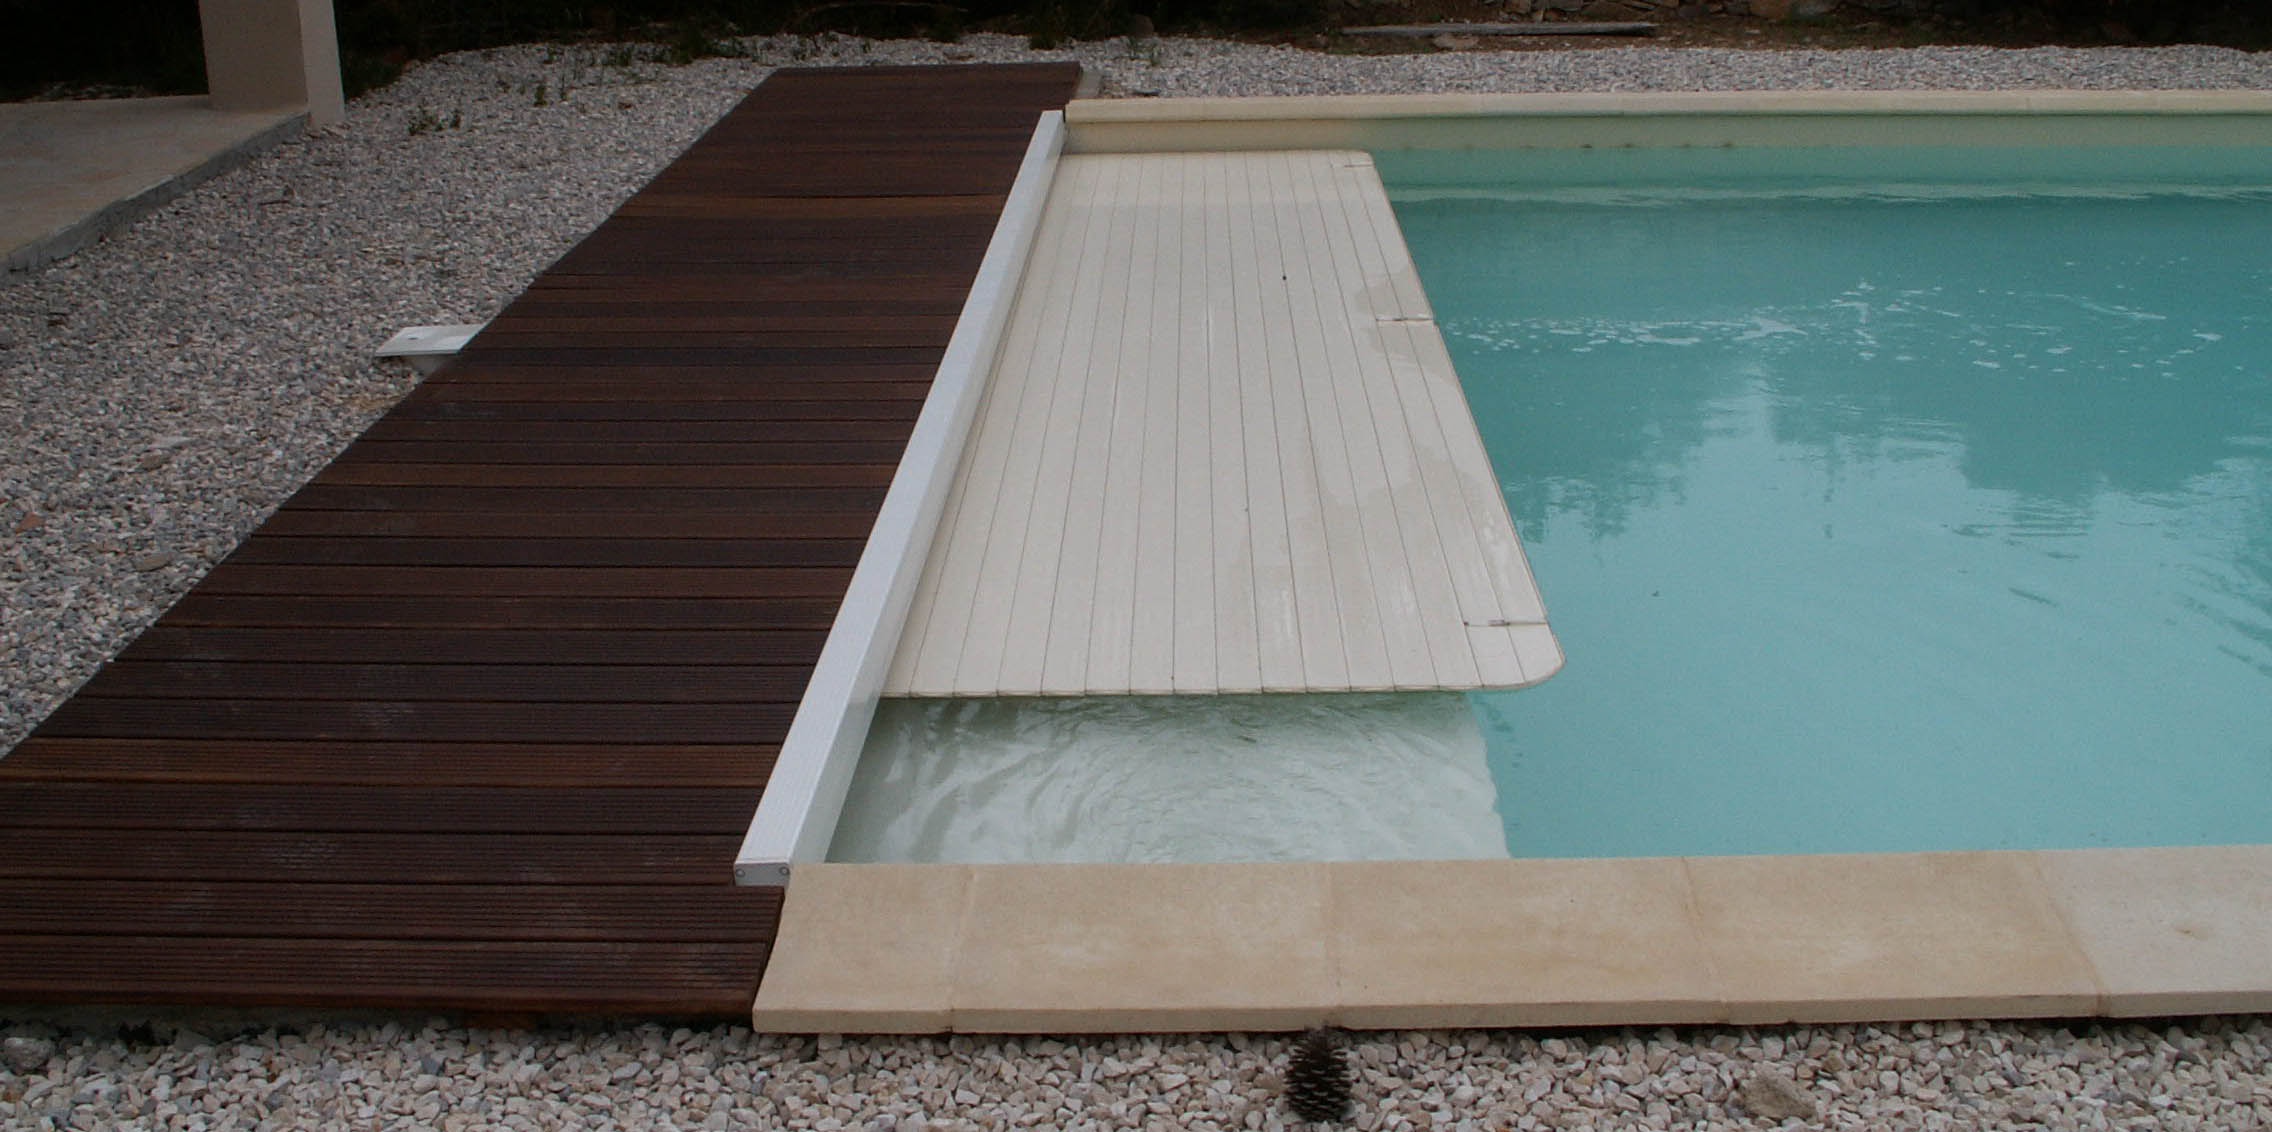 piscines_nimes-installation_piscines-amenagement_piscine-piscine_en_kit-piscine_en_bois-piscine_hors_sol-terrassement_piscine-installation_spa-renovation_piscine reduite